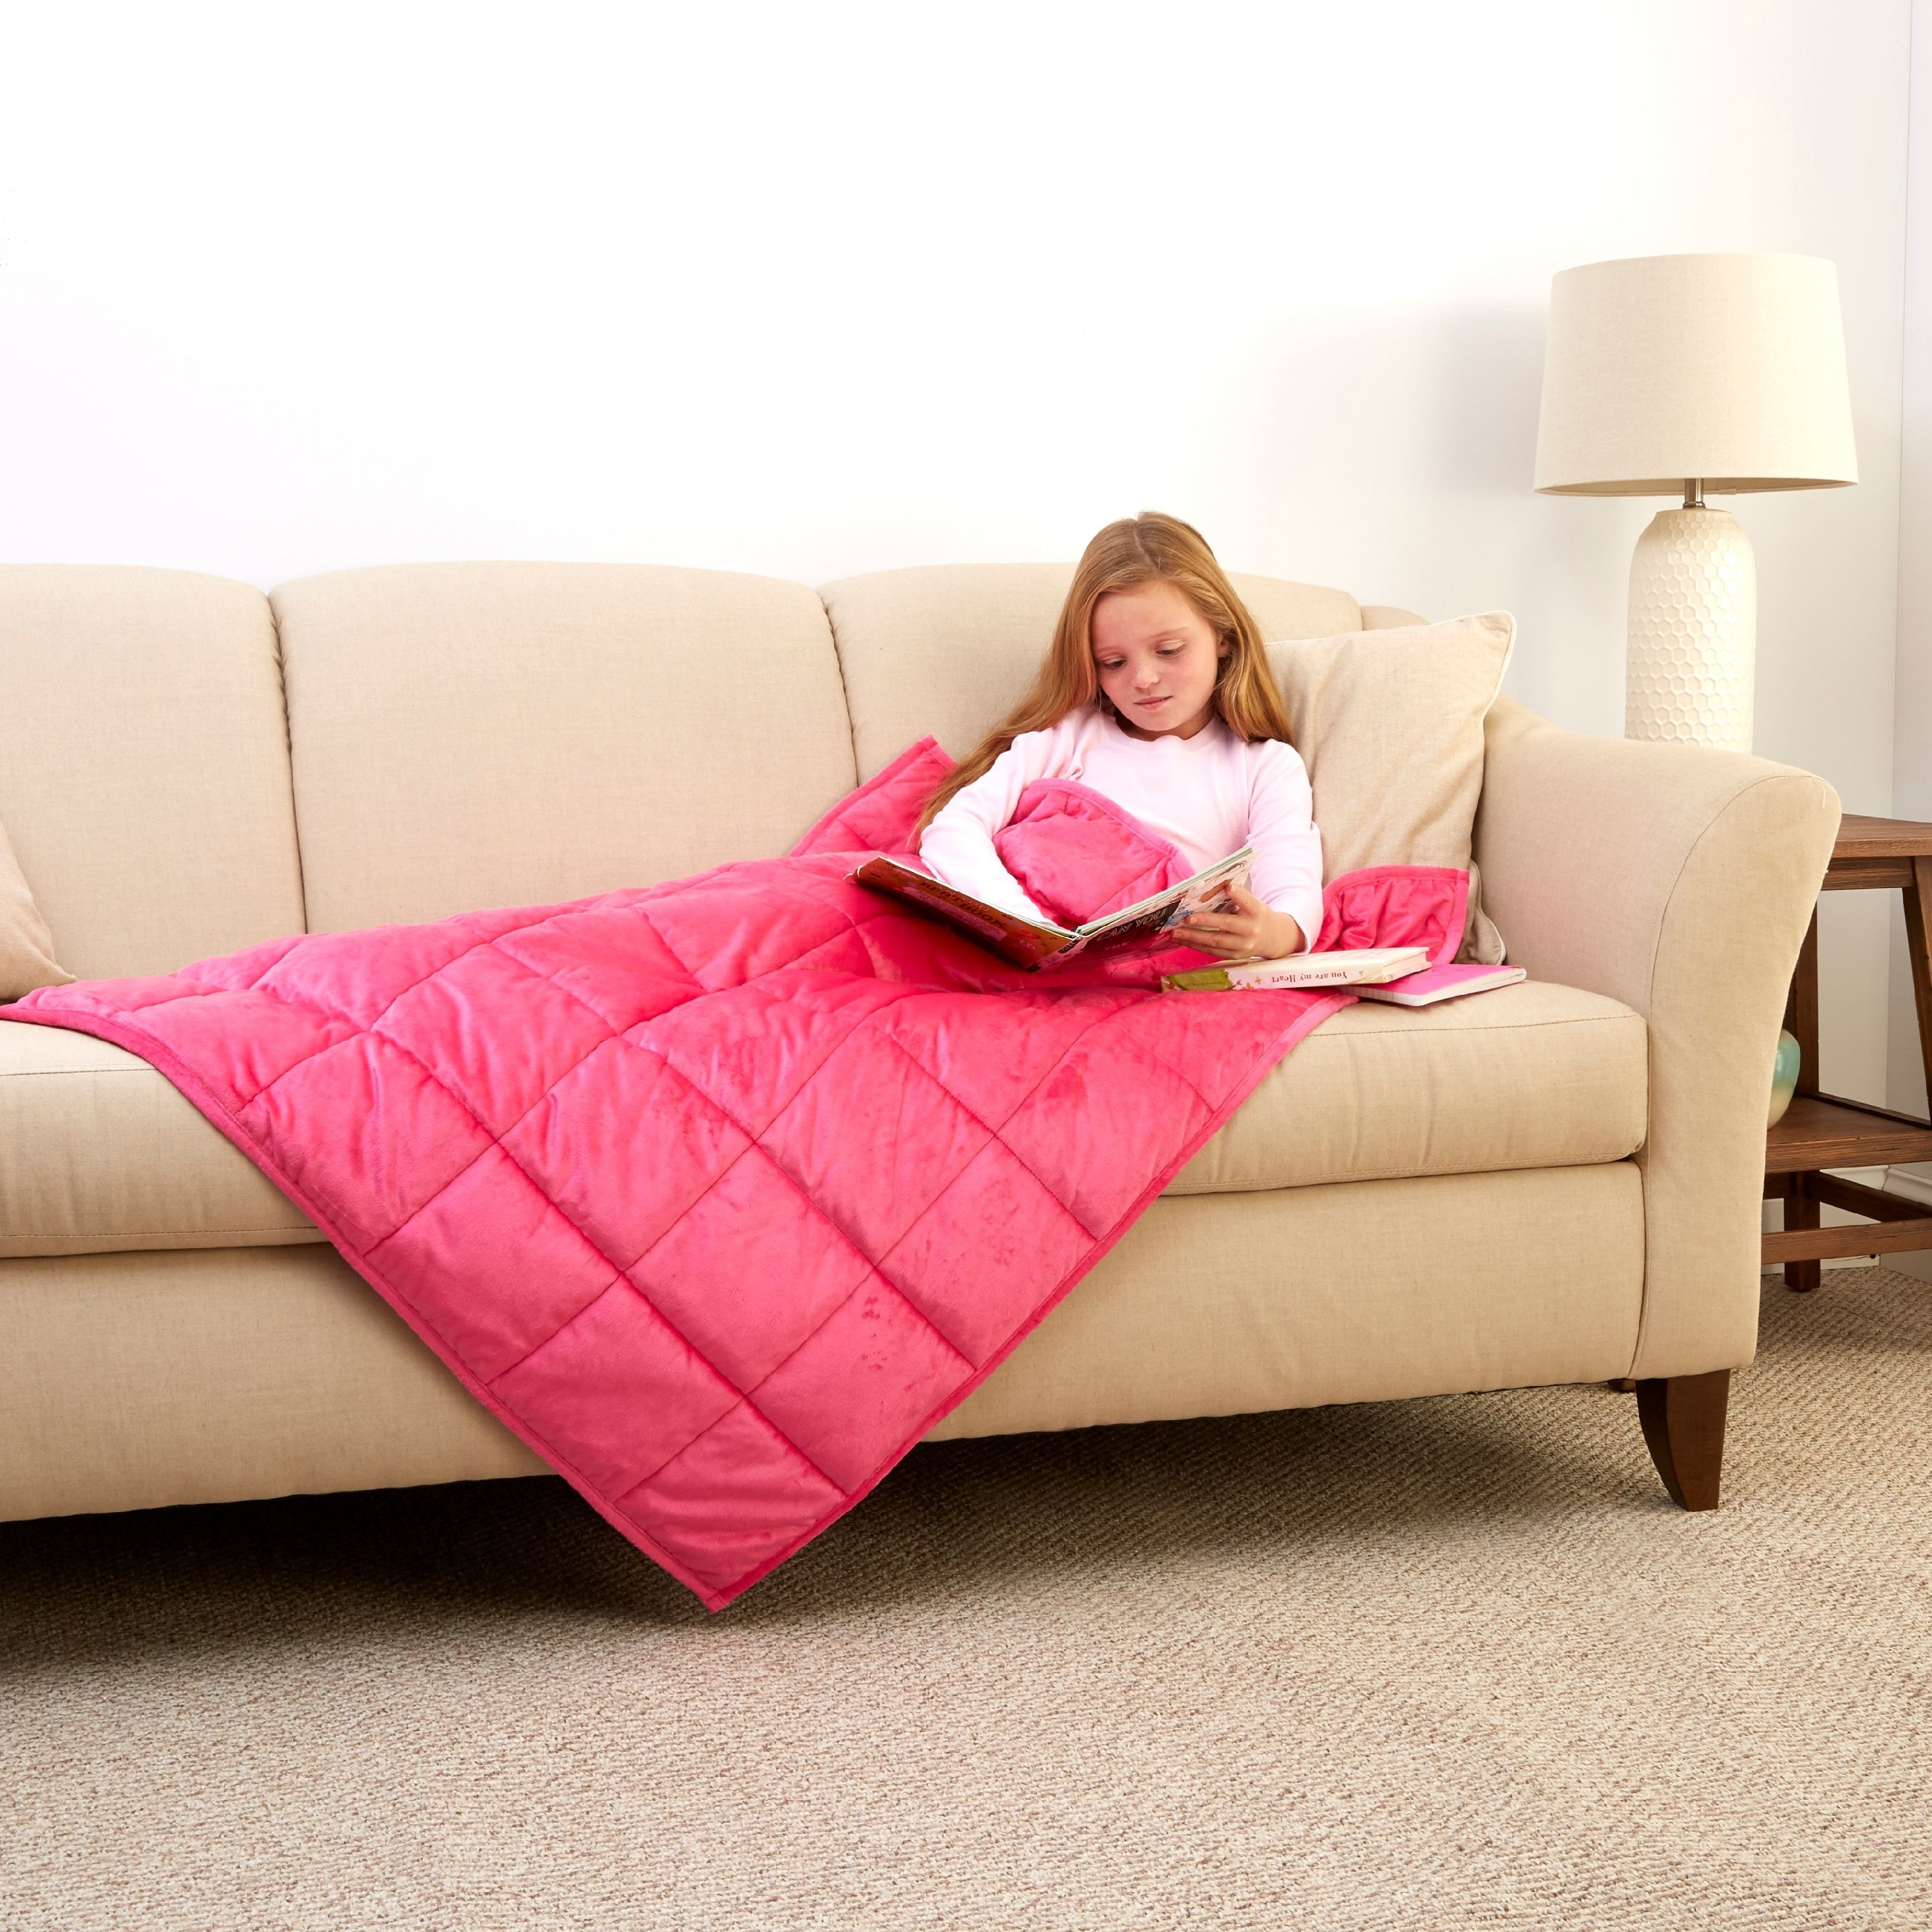 Child model sitting on the couch and reading with a pink weighted blanket on top of them